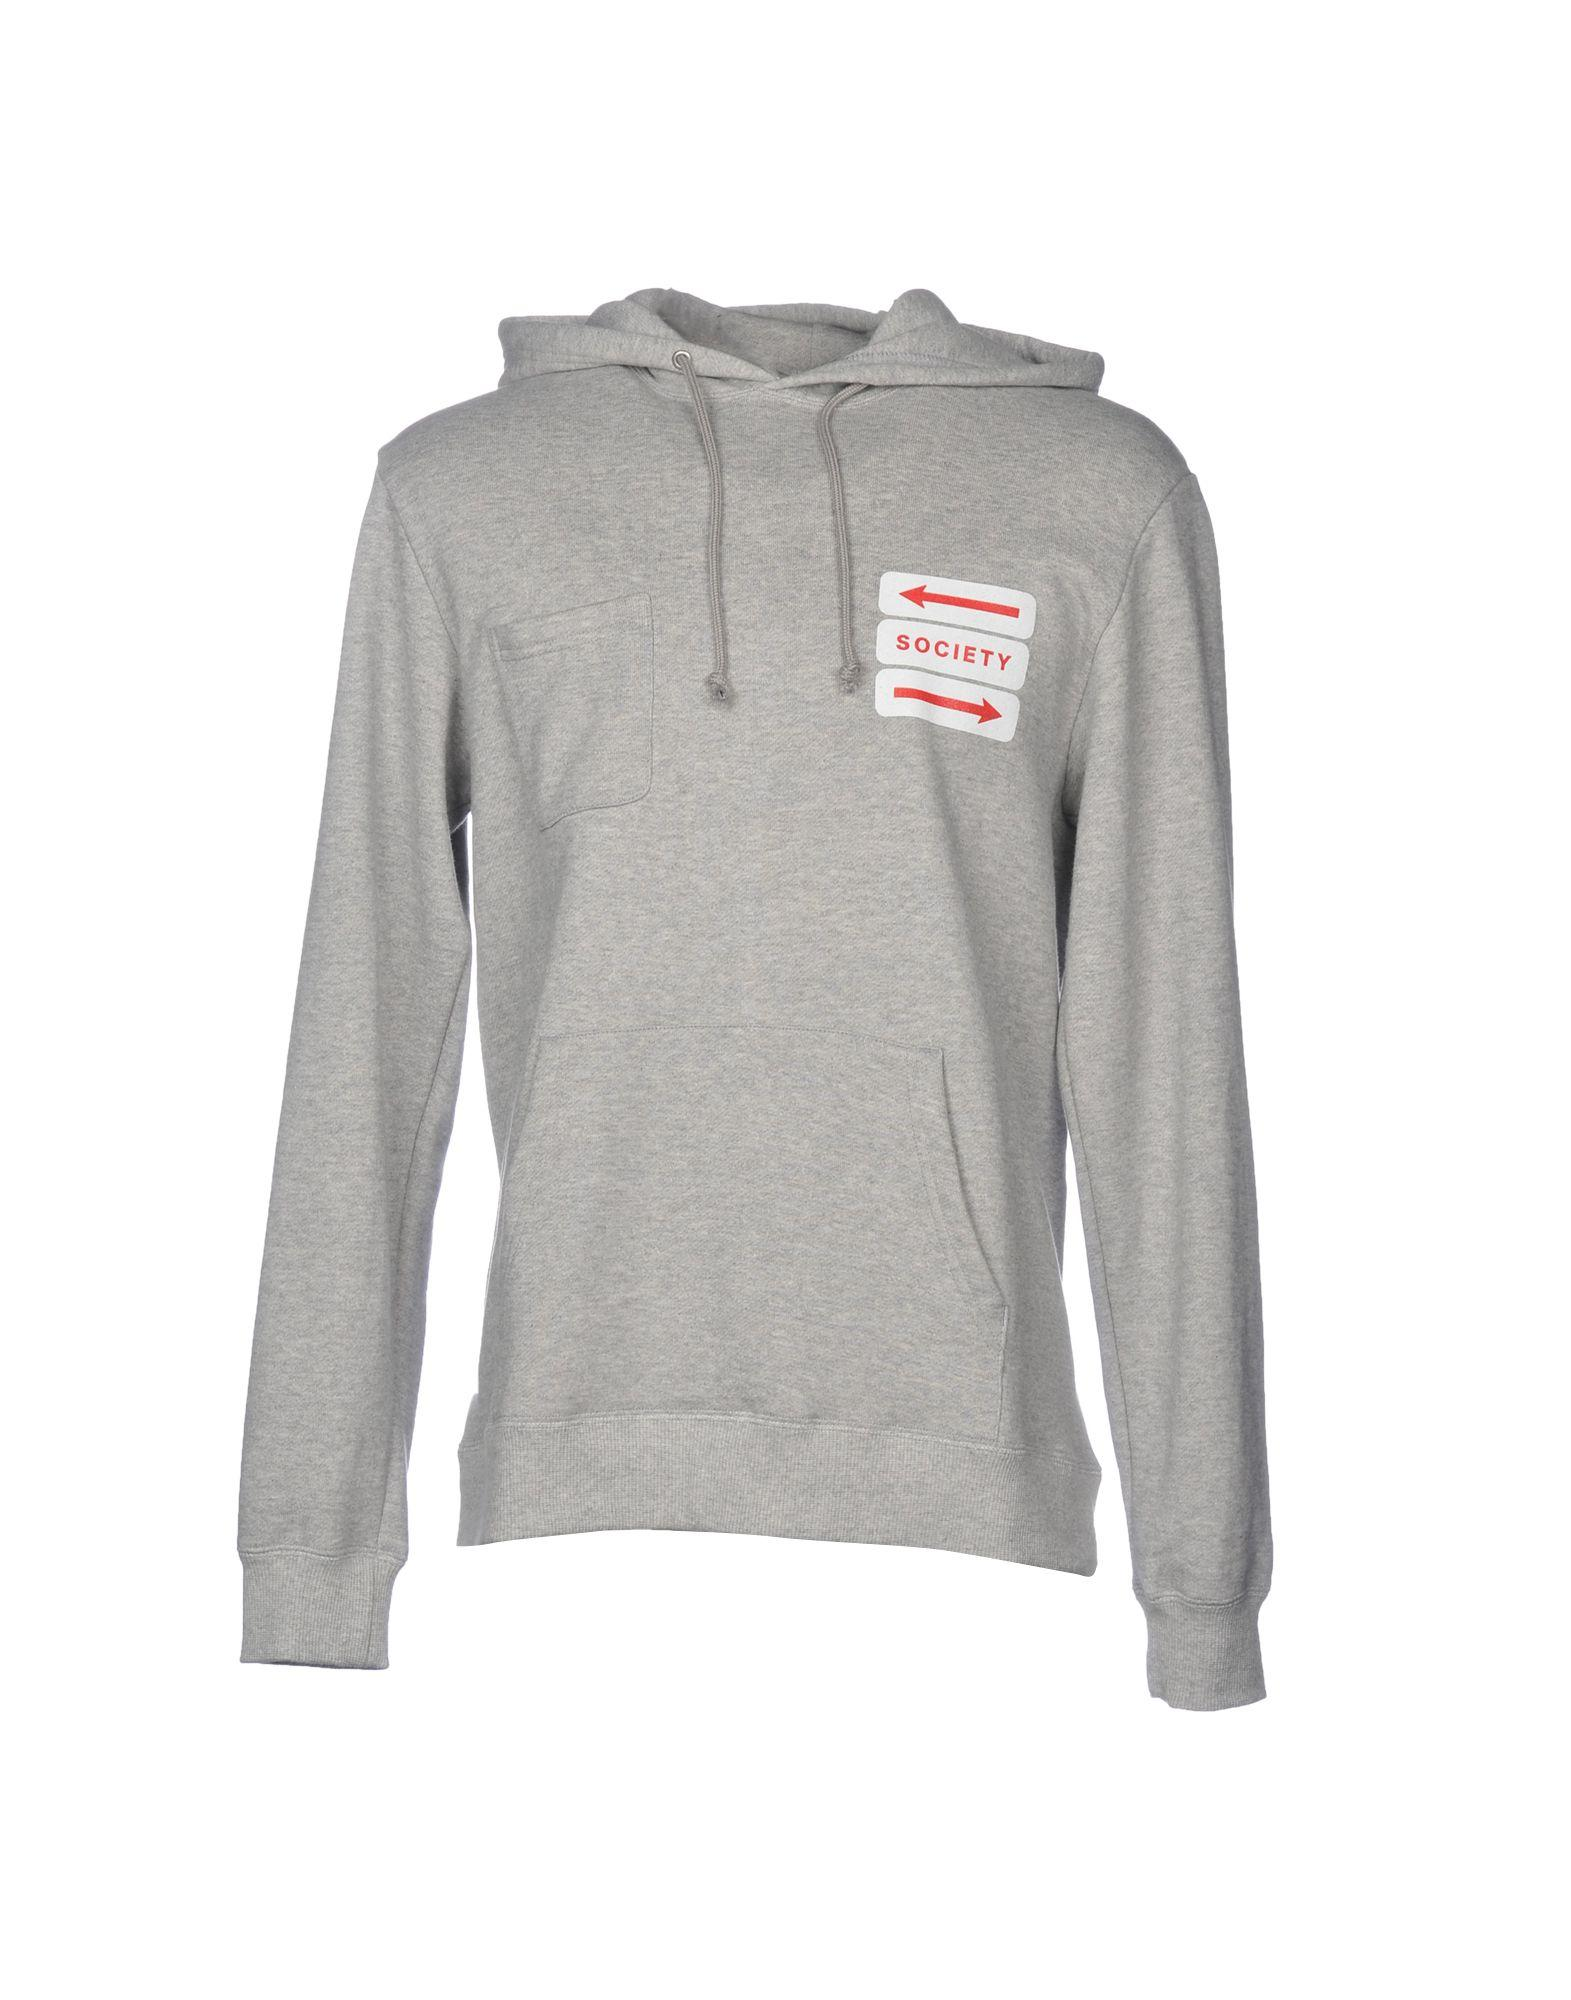 Society Hooded Sweatshirt In Light Grey